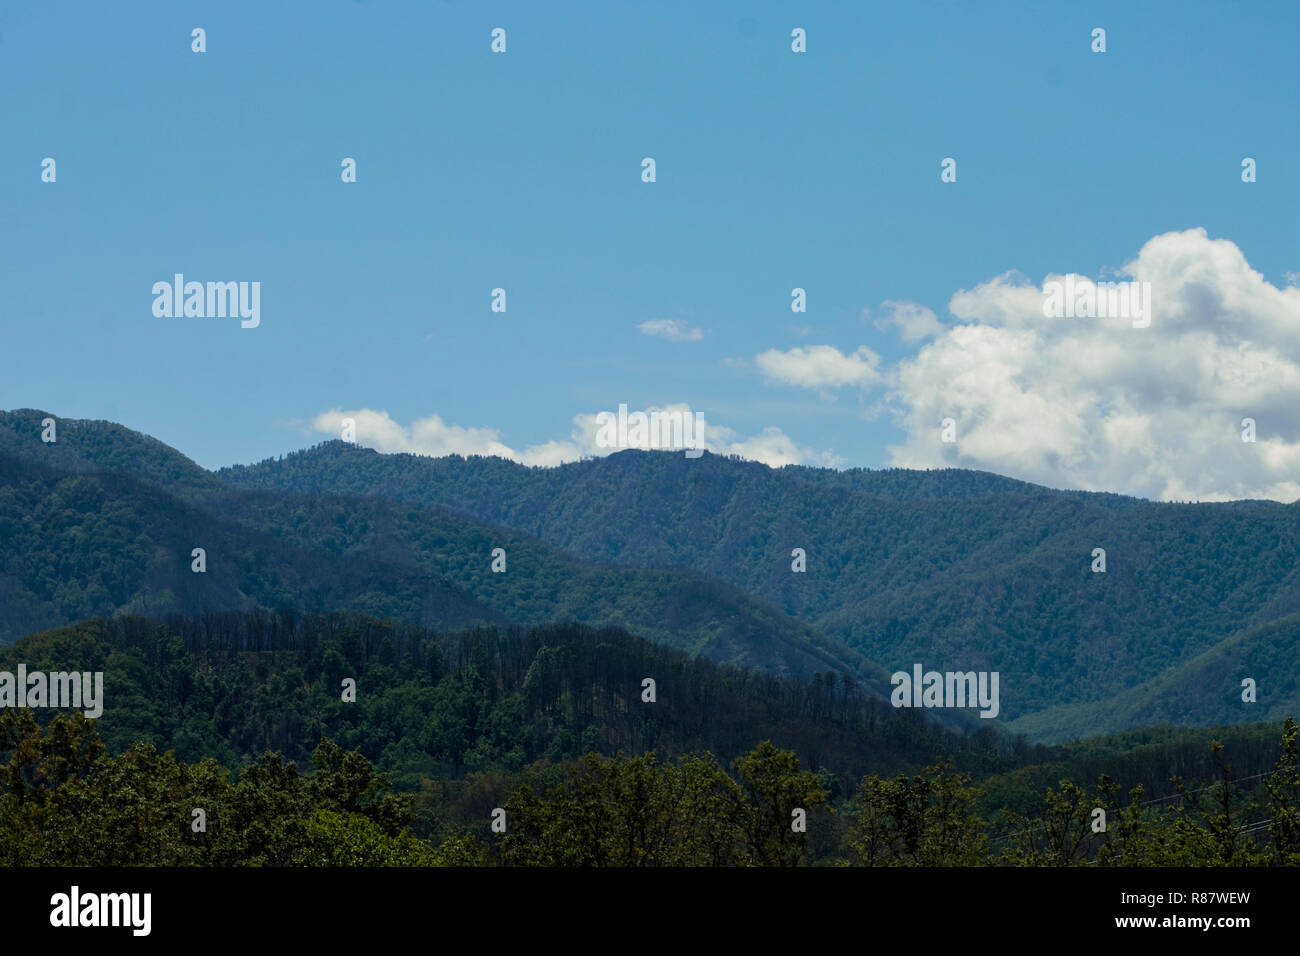 mountains against a blue sky - Stock Image